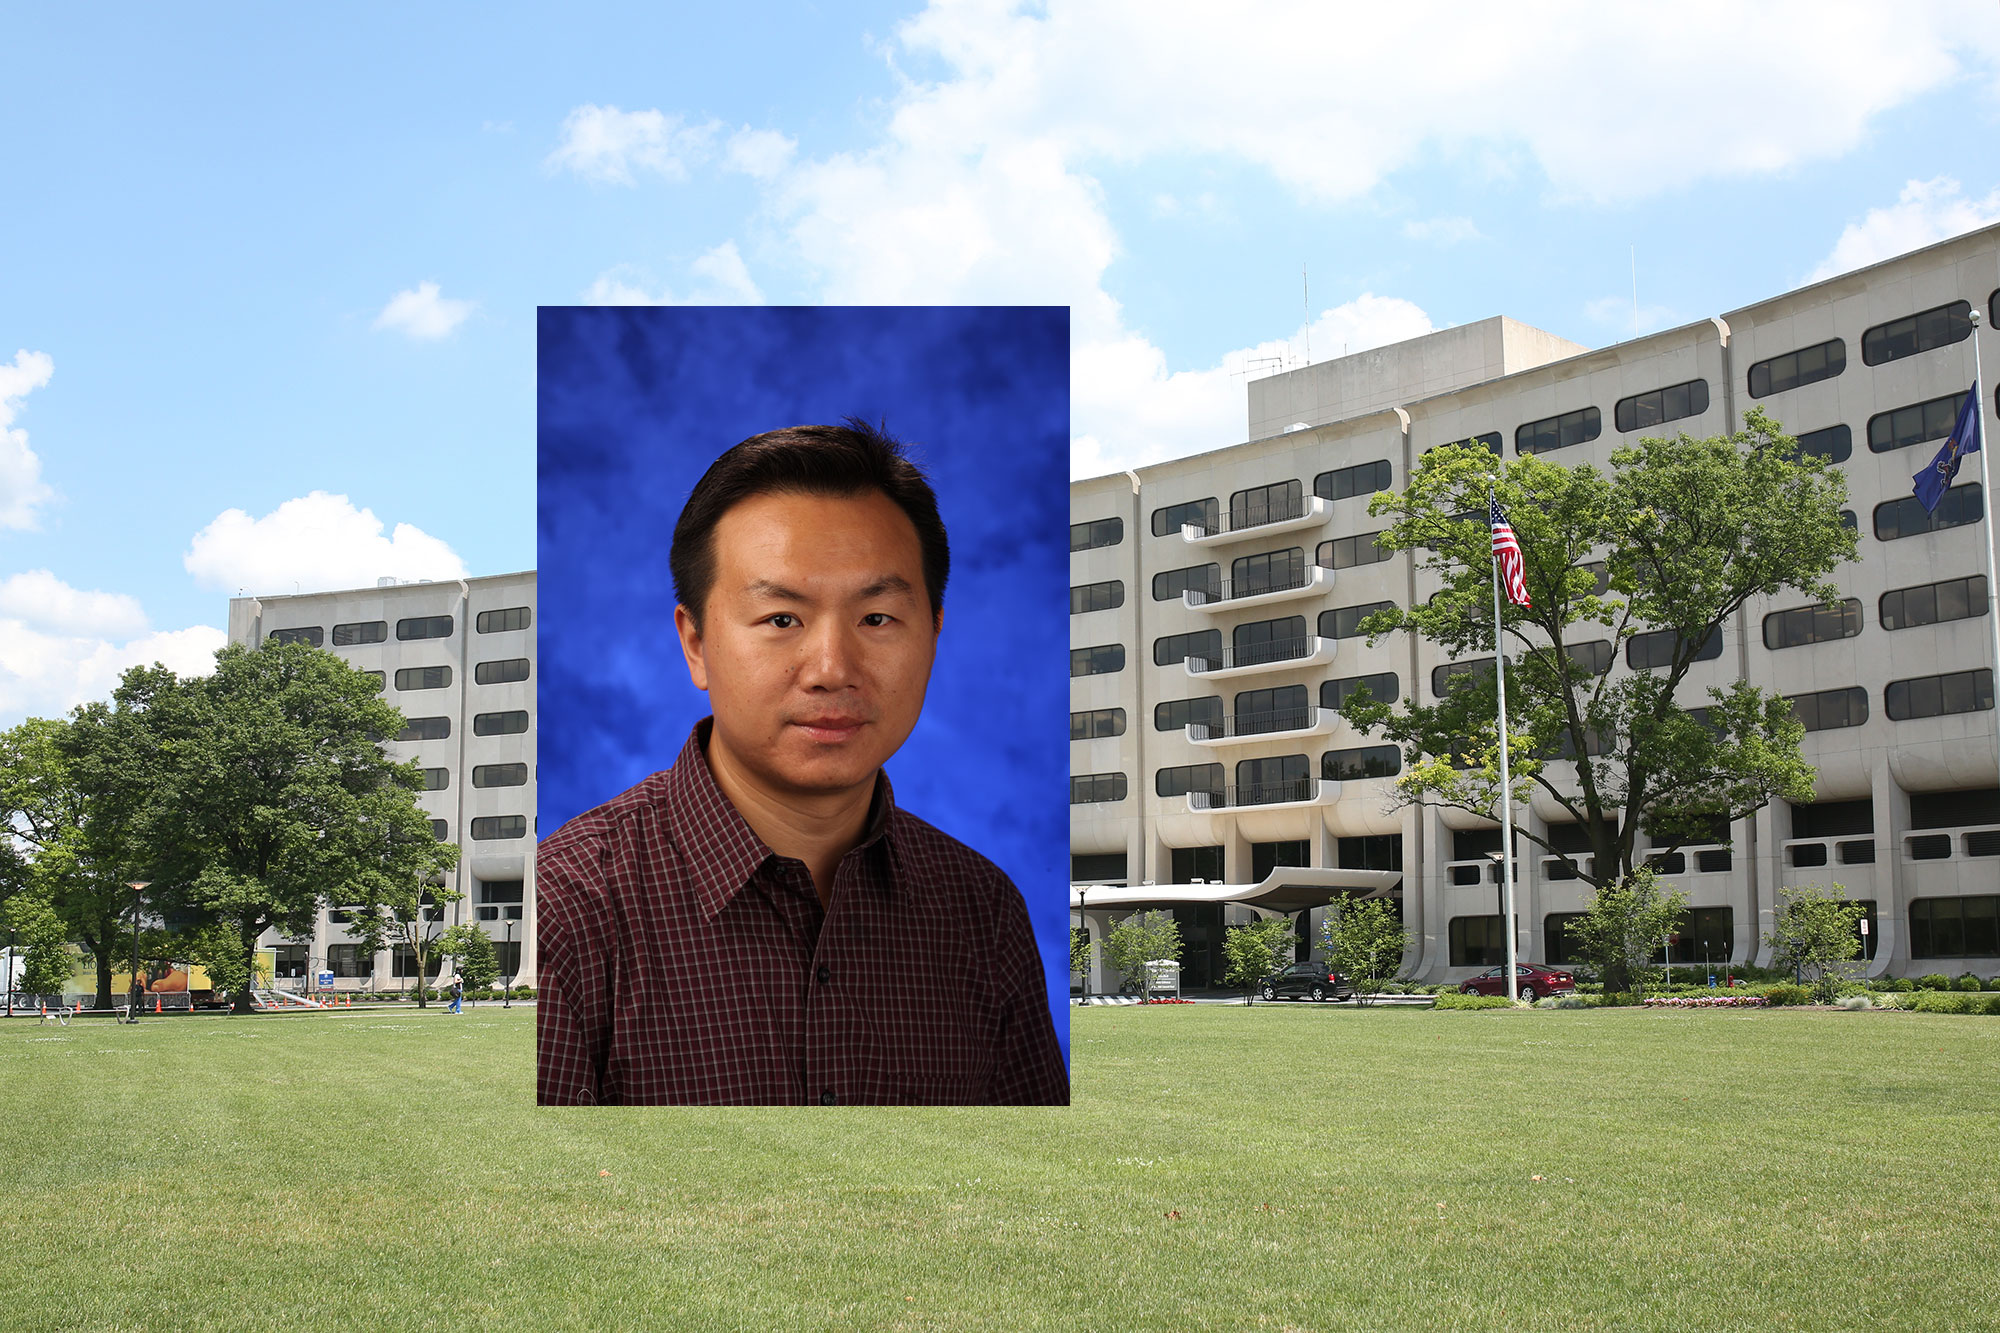 Feng Yue, assistant professor in the Department of Biochemistry and Molecular Biology at Penn State College of Medicine, recently received a $1.91 million Outstanding Investigator Award via the Maximizing Investigators' Research Award mechanism from the National Institutes of Health. A photo of Yue wearing a plaid collared shirt in front of a blue photo background is superimposed to the left of center of a photo of Penn State College of Medicine's Crescent Building at 500 University Drive, Hershey, PA, showing the building curving around the back with a green lawn in front.